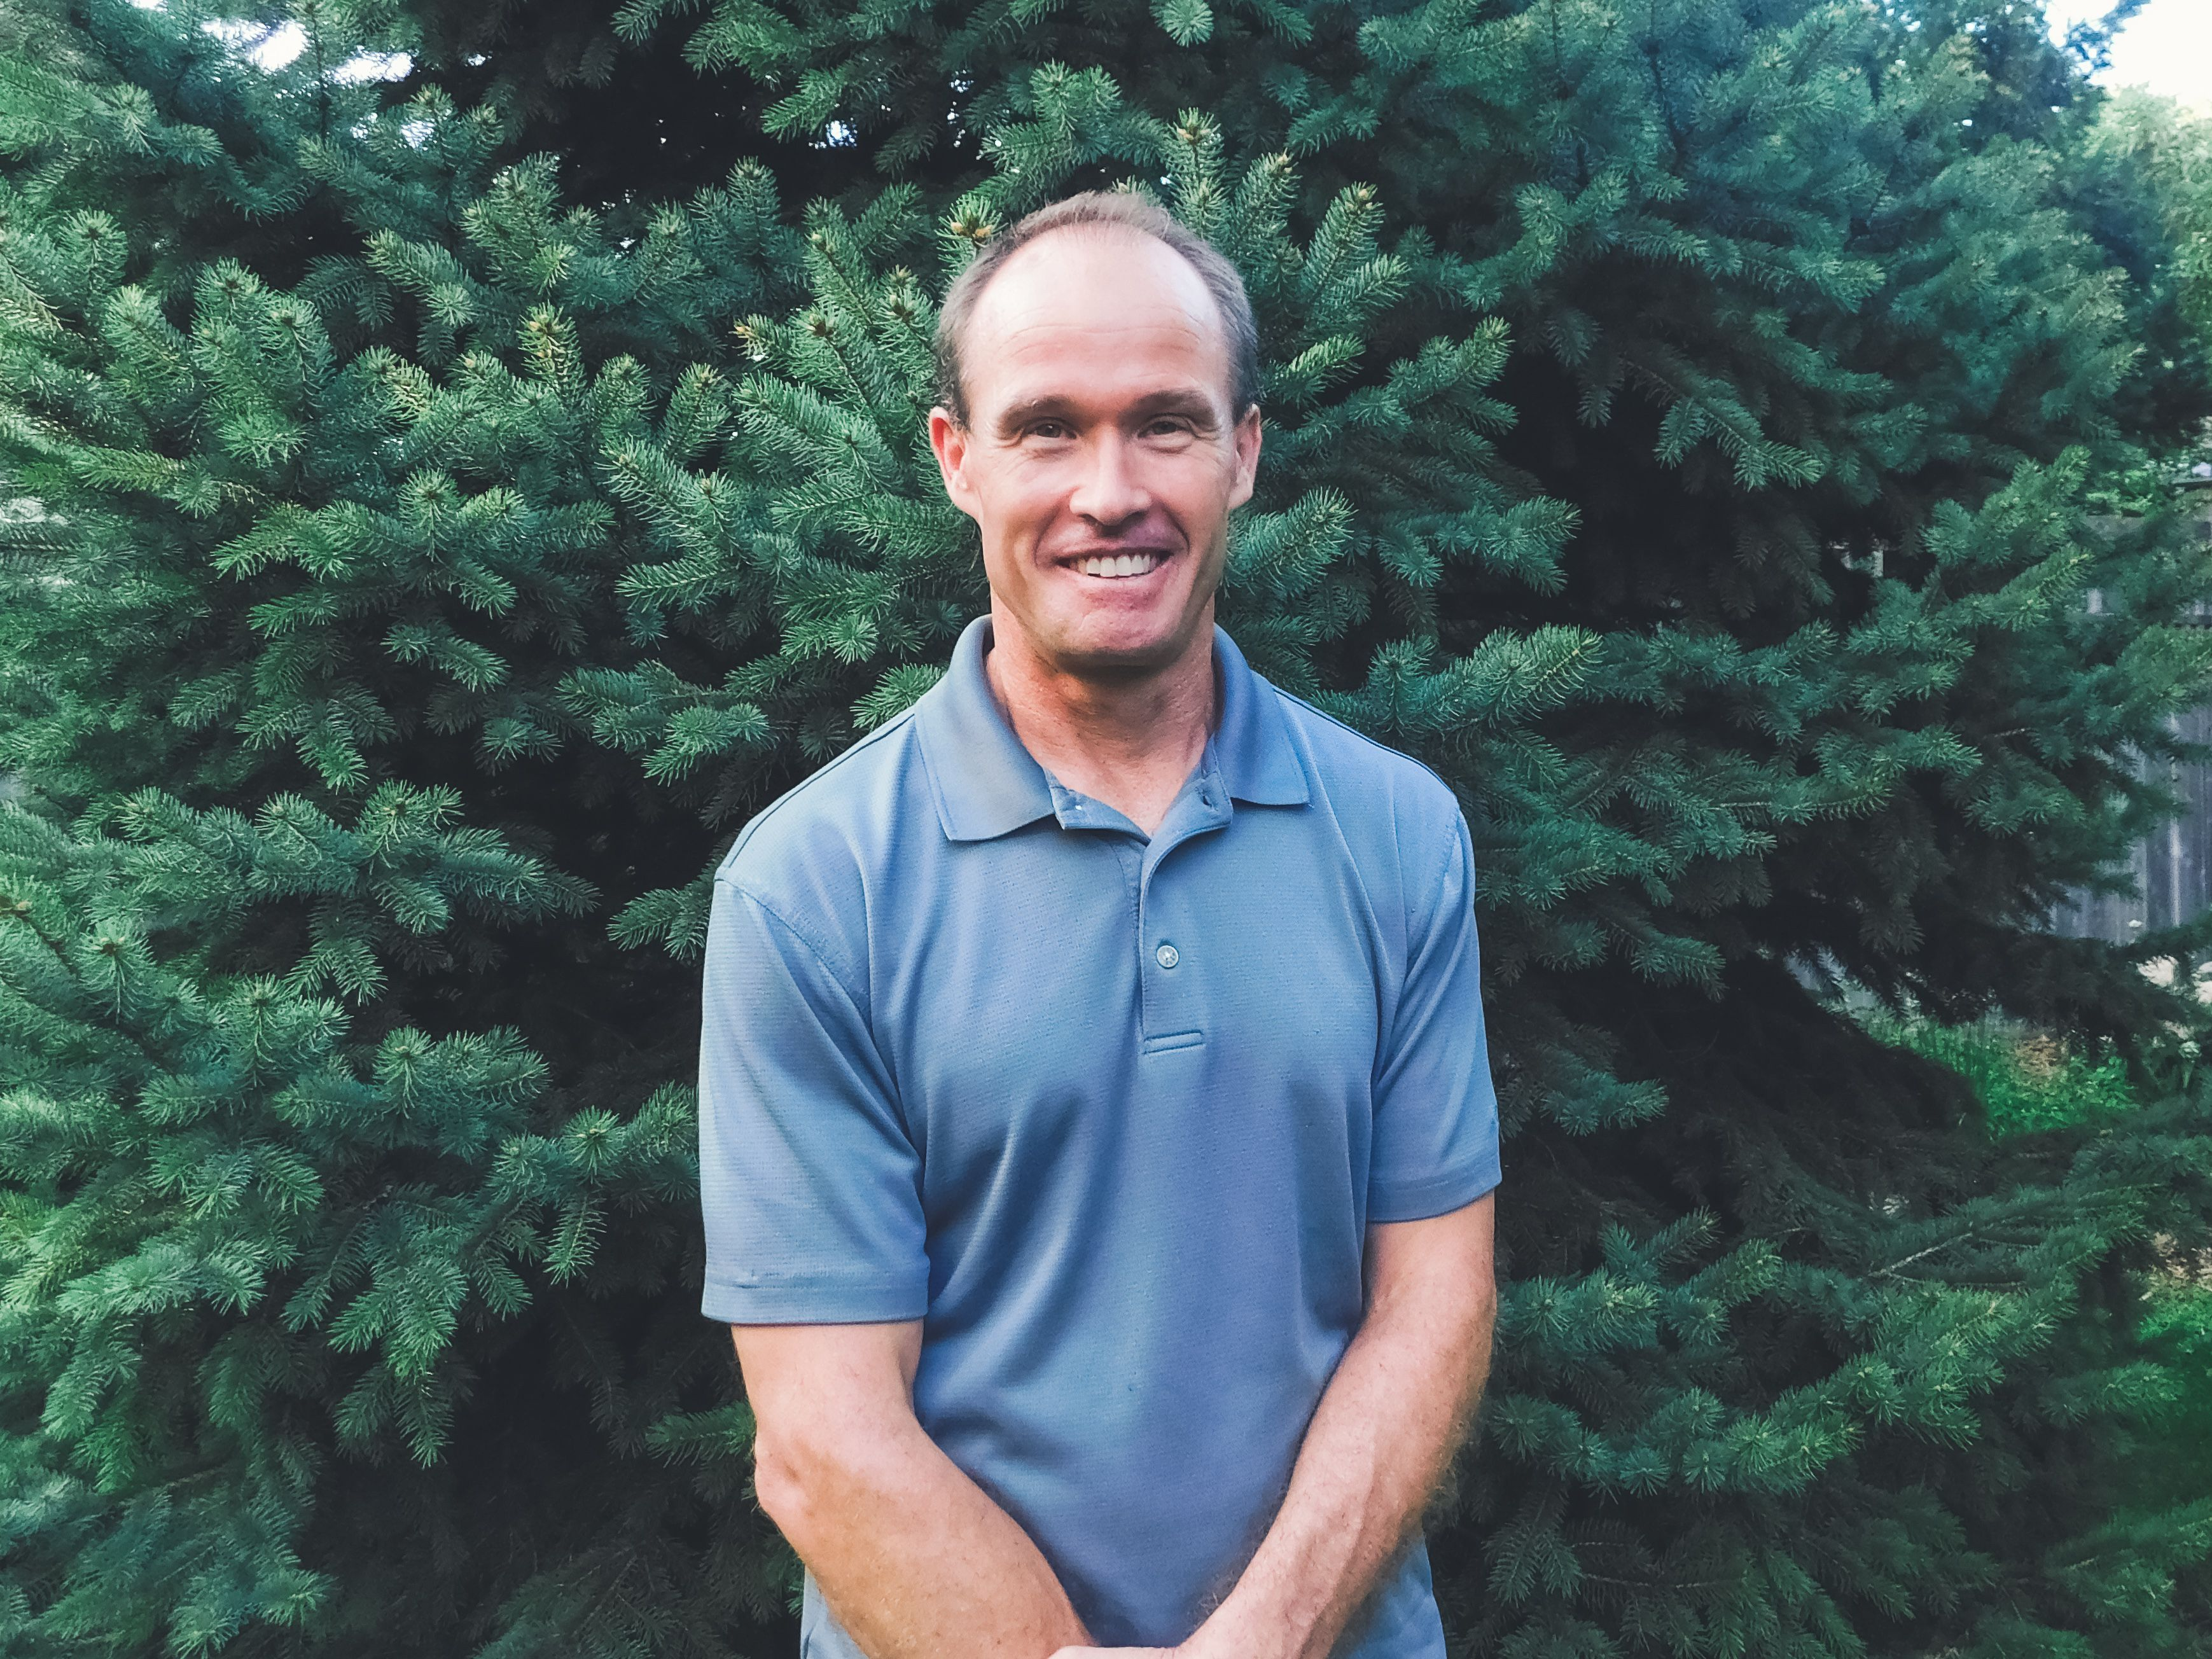 From TBI to Volunteer, Father, & Husband - Dale's Story